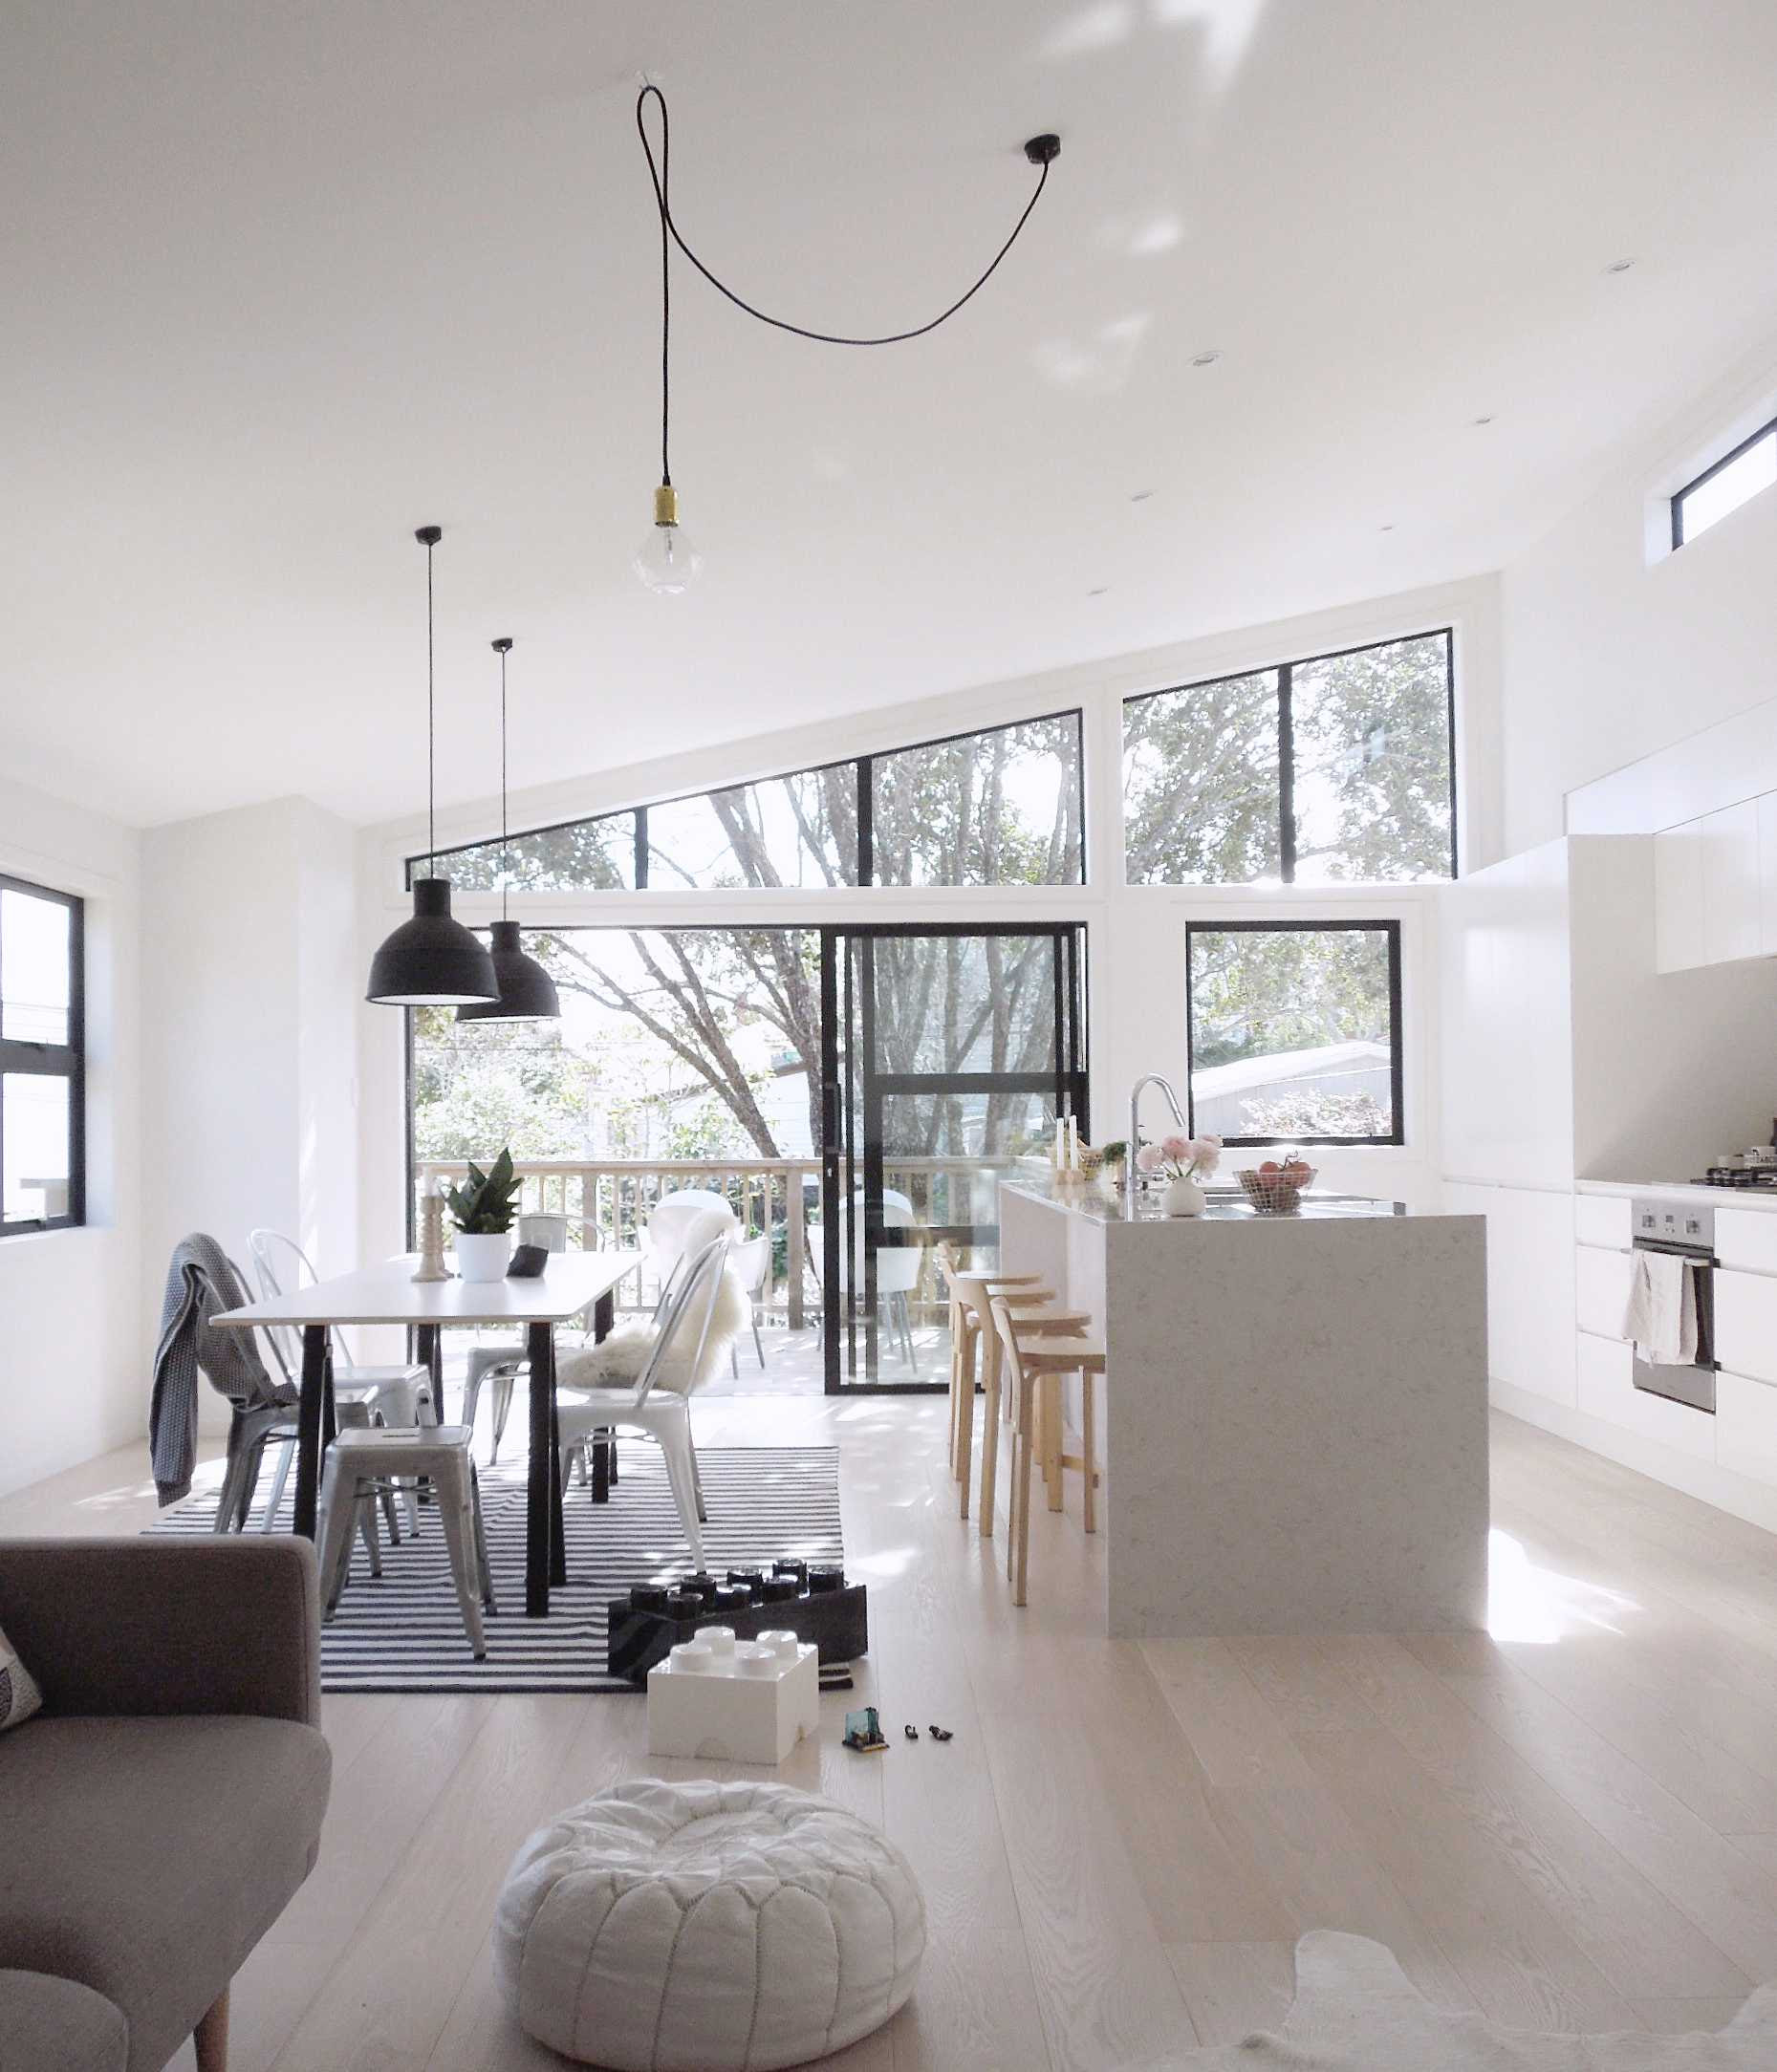 A Minimal And Liveable New Zealand Home By The Beach DesignSponge